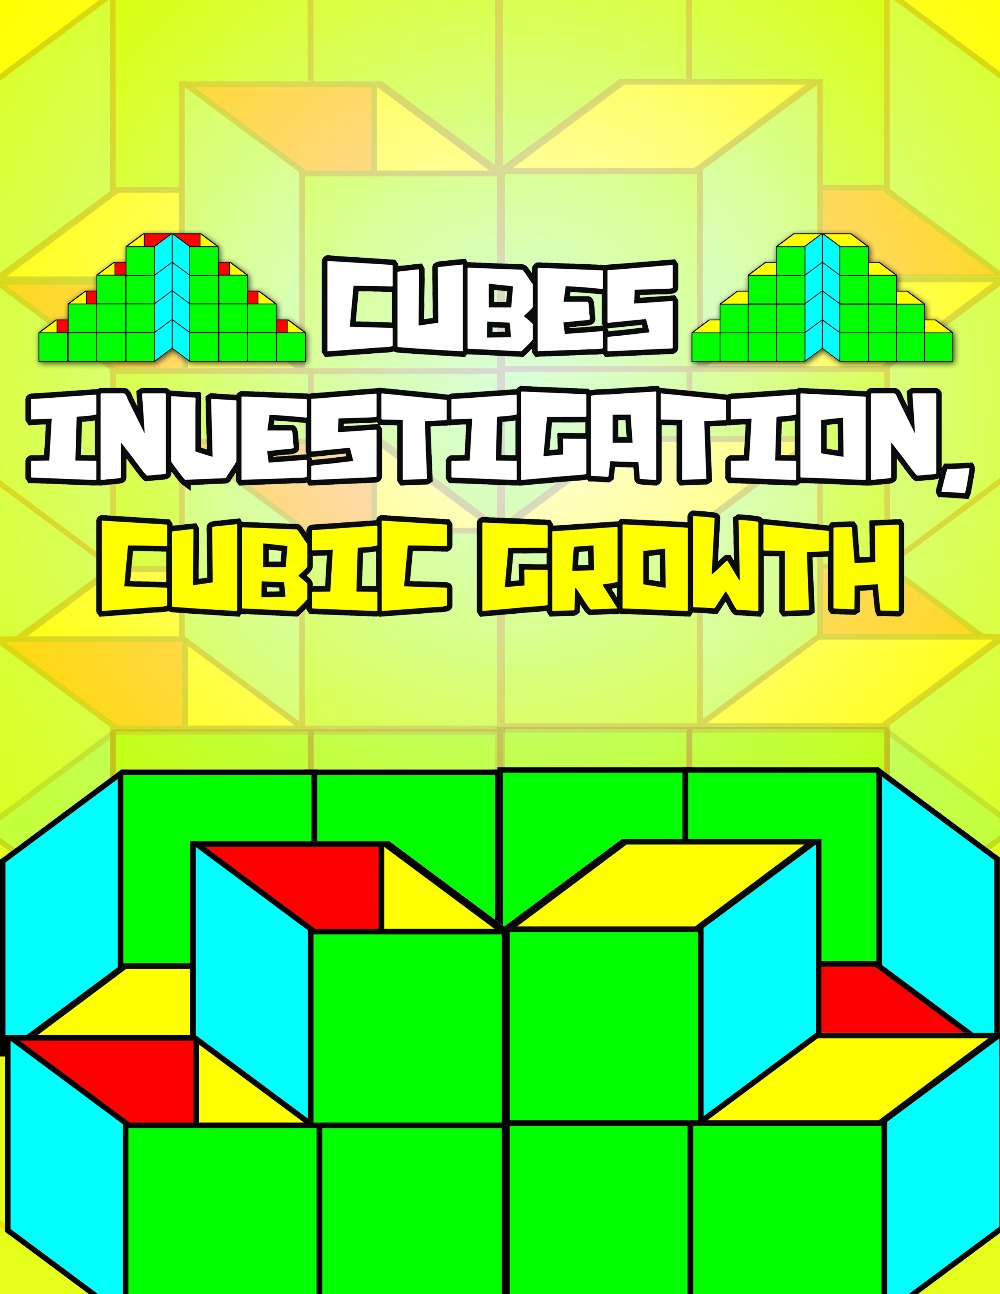 Cubes Investigation, Cubic Growth